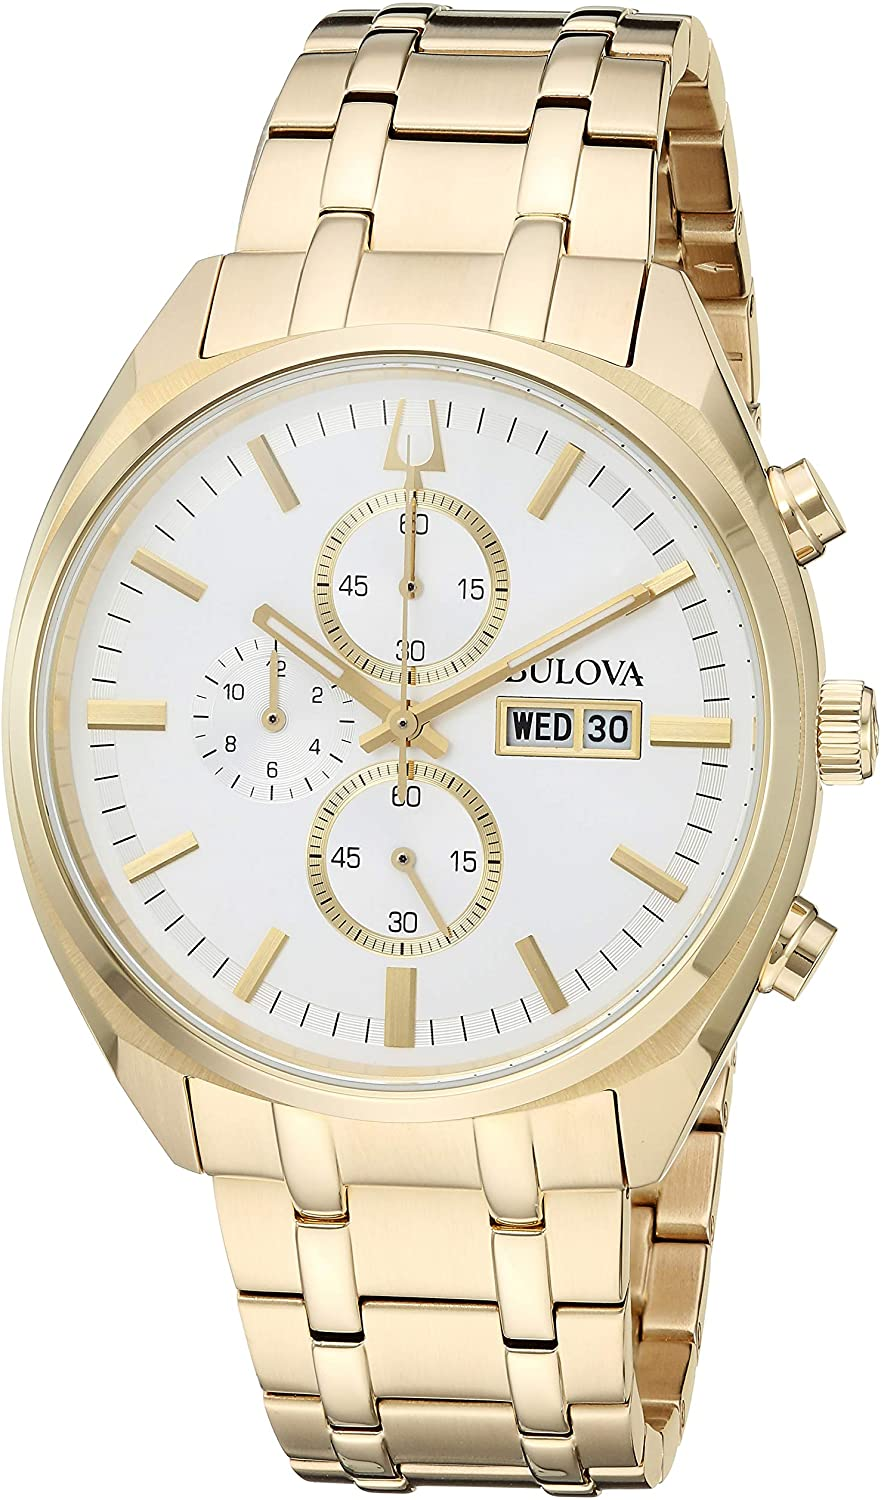 Bulova Gold Tone Dress Watch